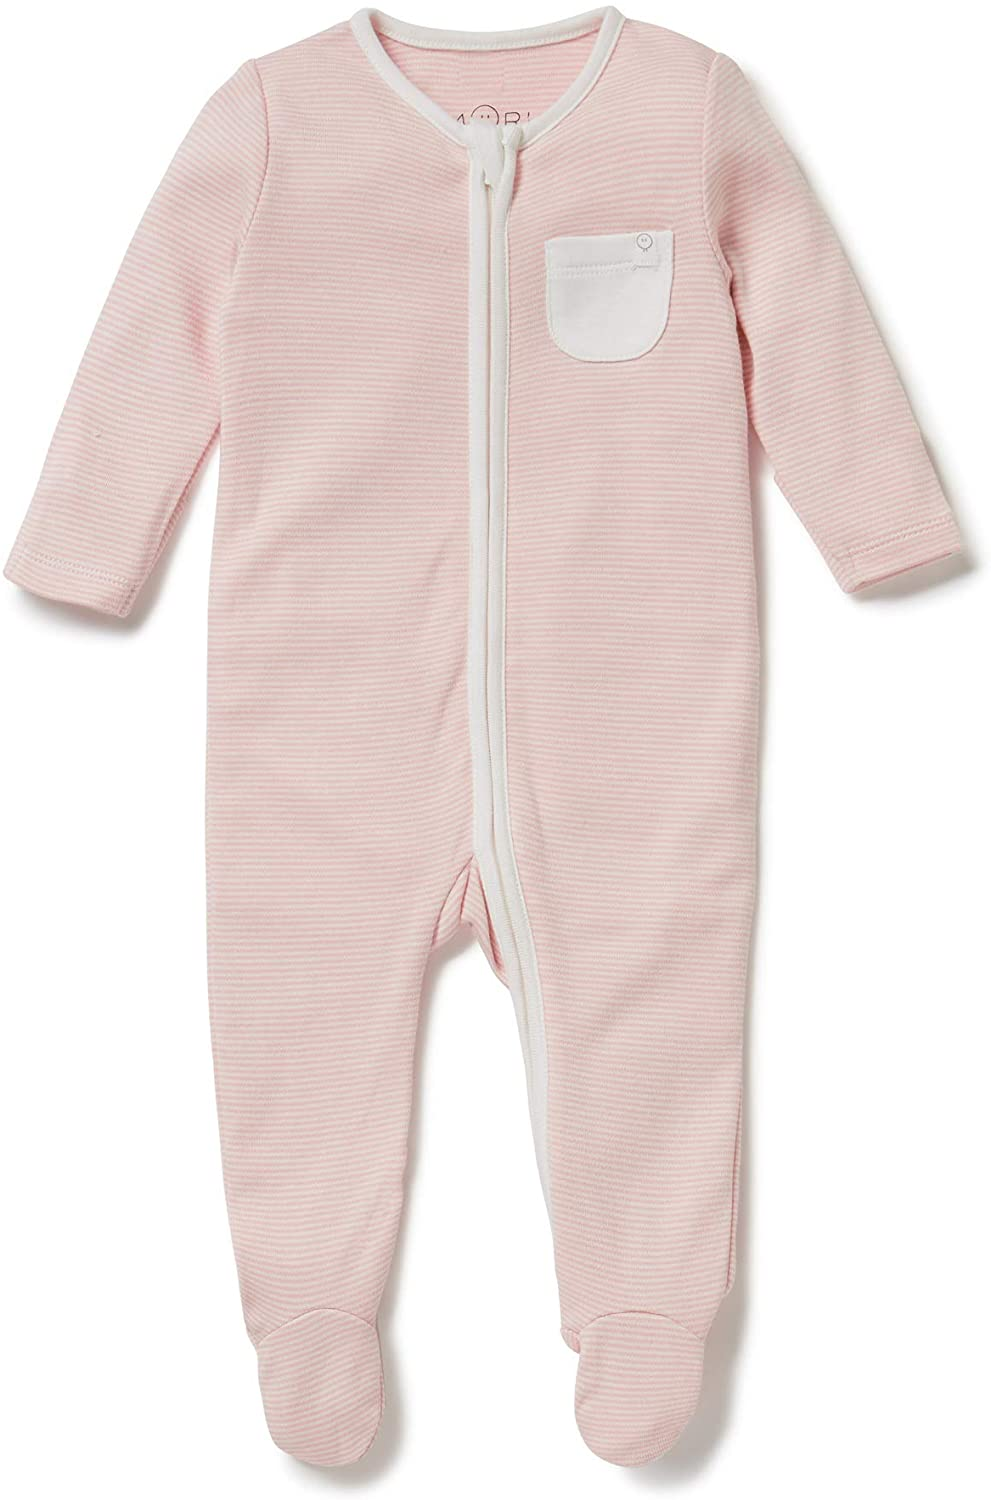 MORI Zip-Up Sleepsuit, Baby Girl Clothing, 30% Organic Cotton & 70% Bamboo, (Newborn, Blush Stripe)